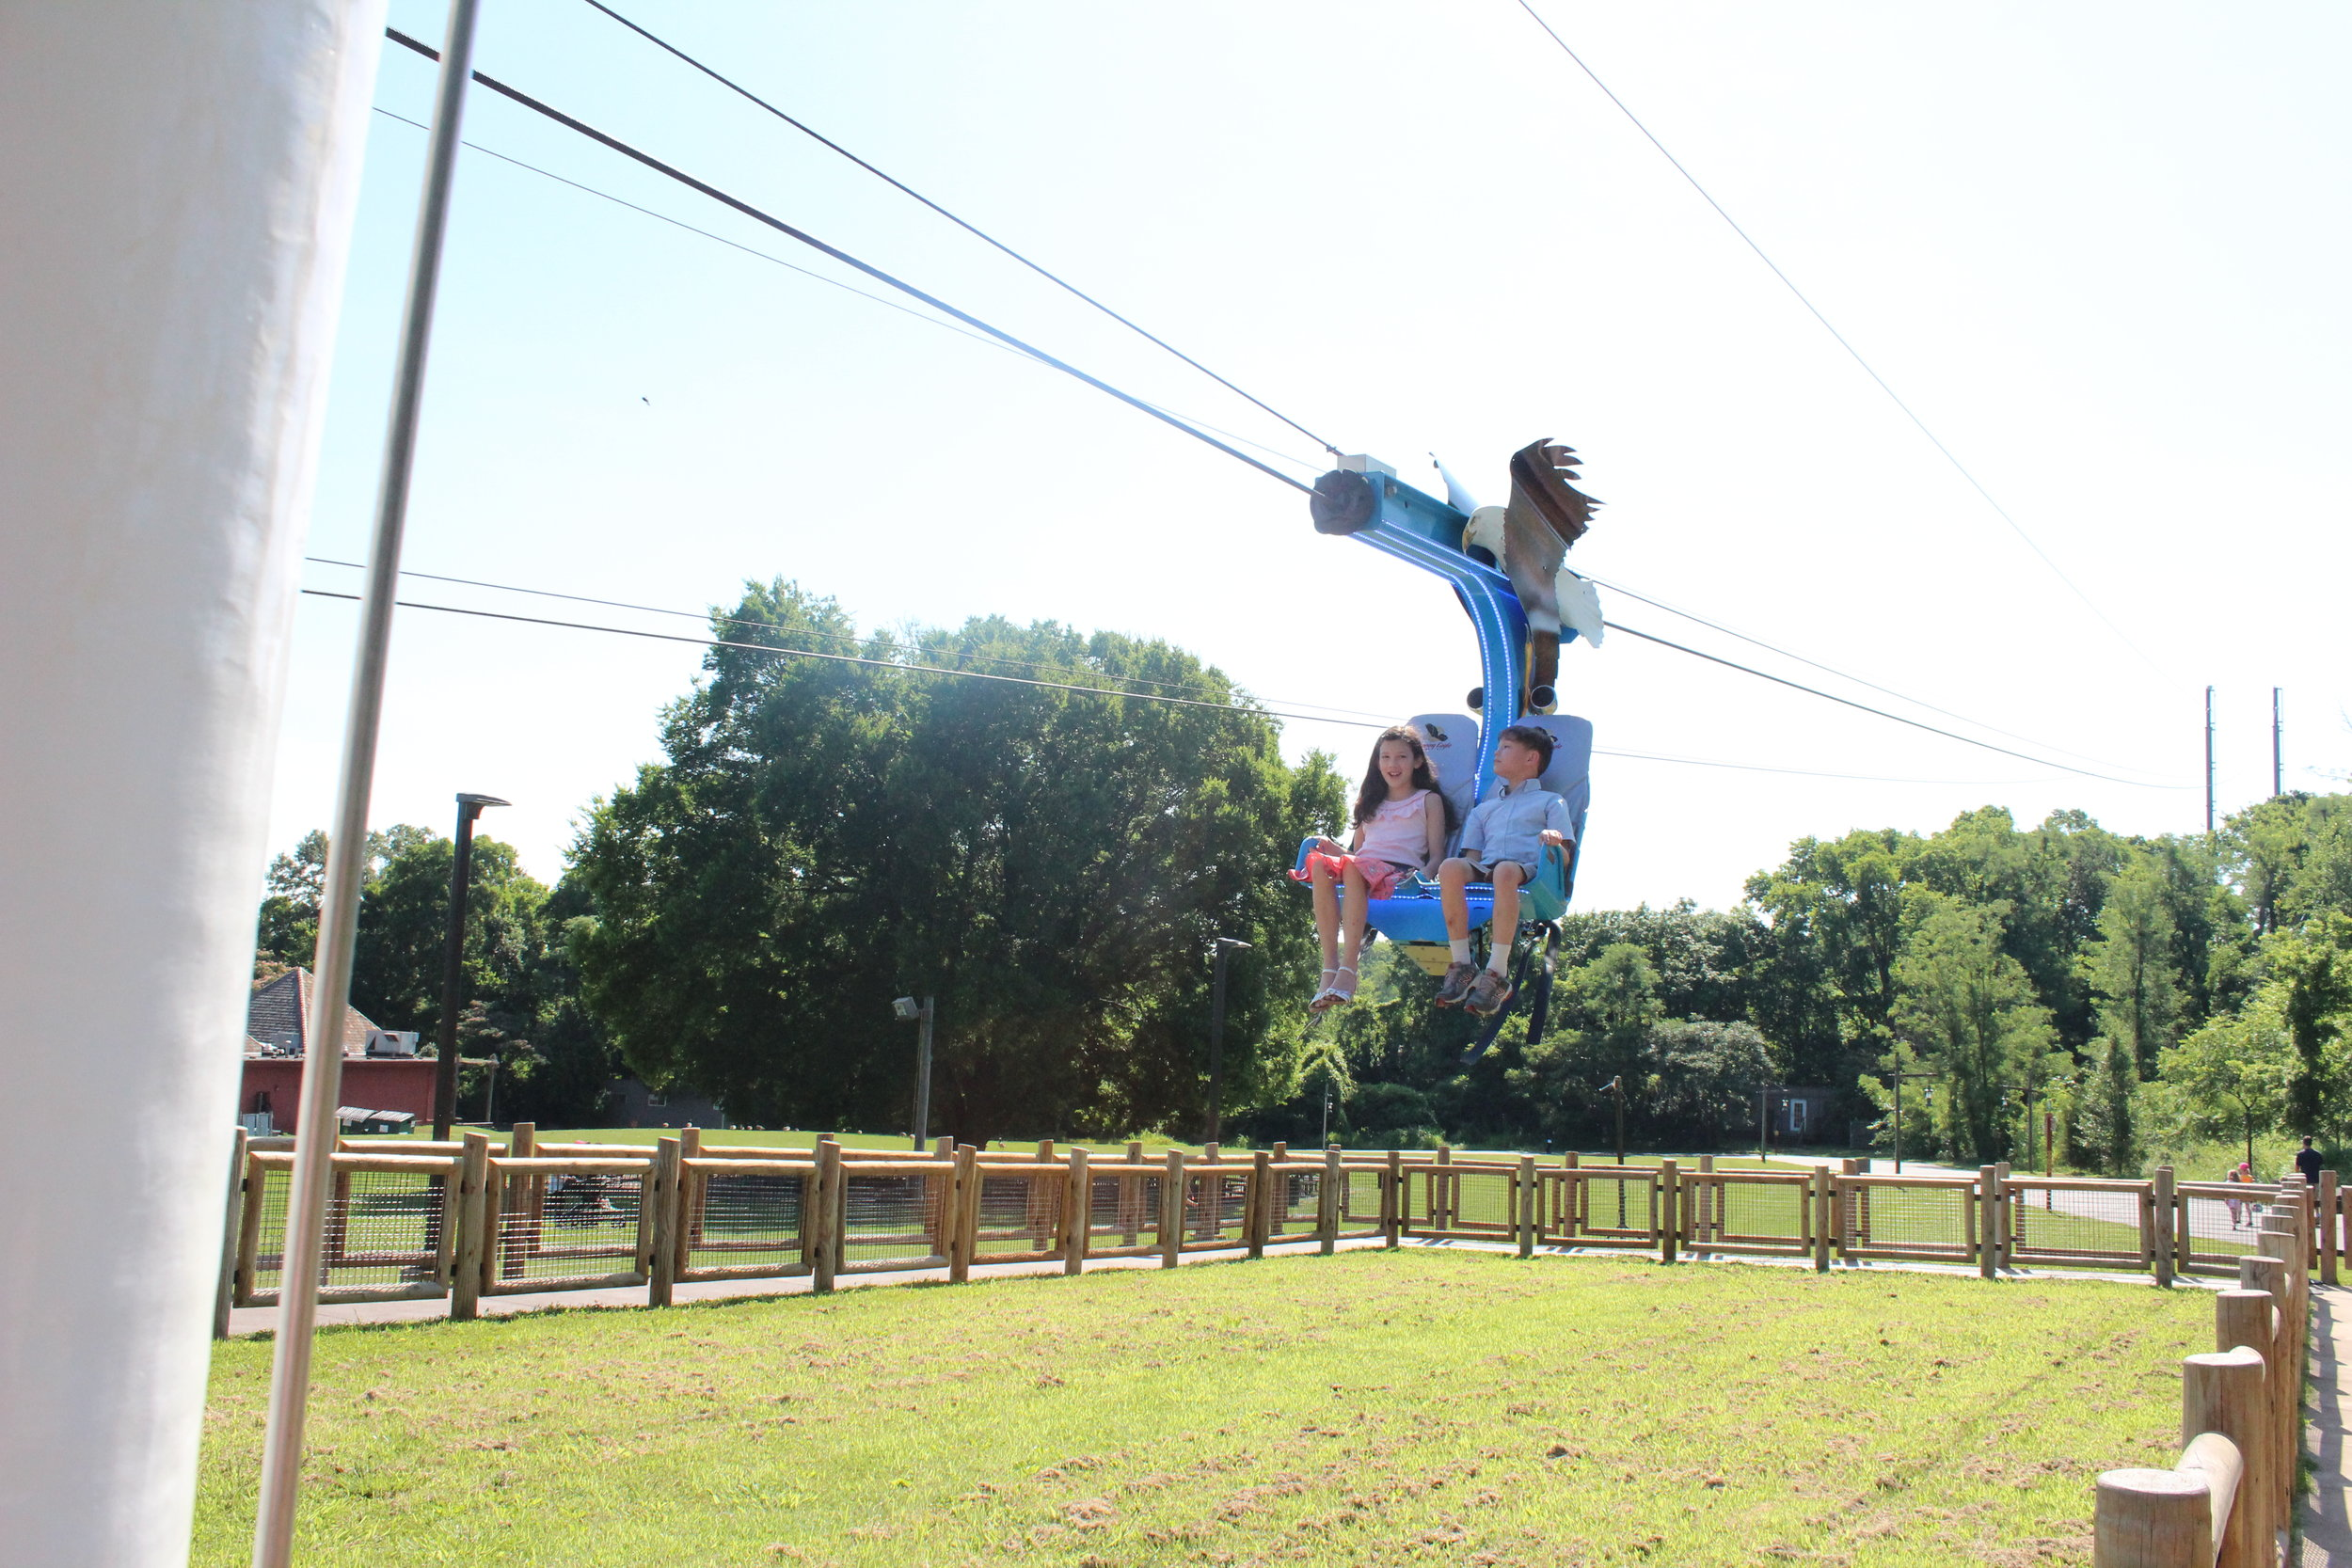 Great Kid Friendly Places to Visit in Nashville the eagle zip line at the Nashville Zoo